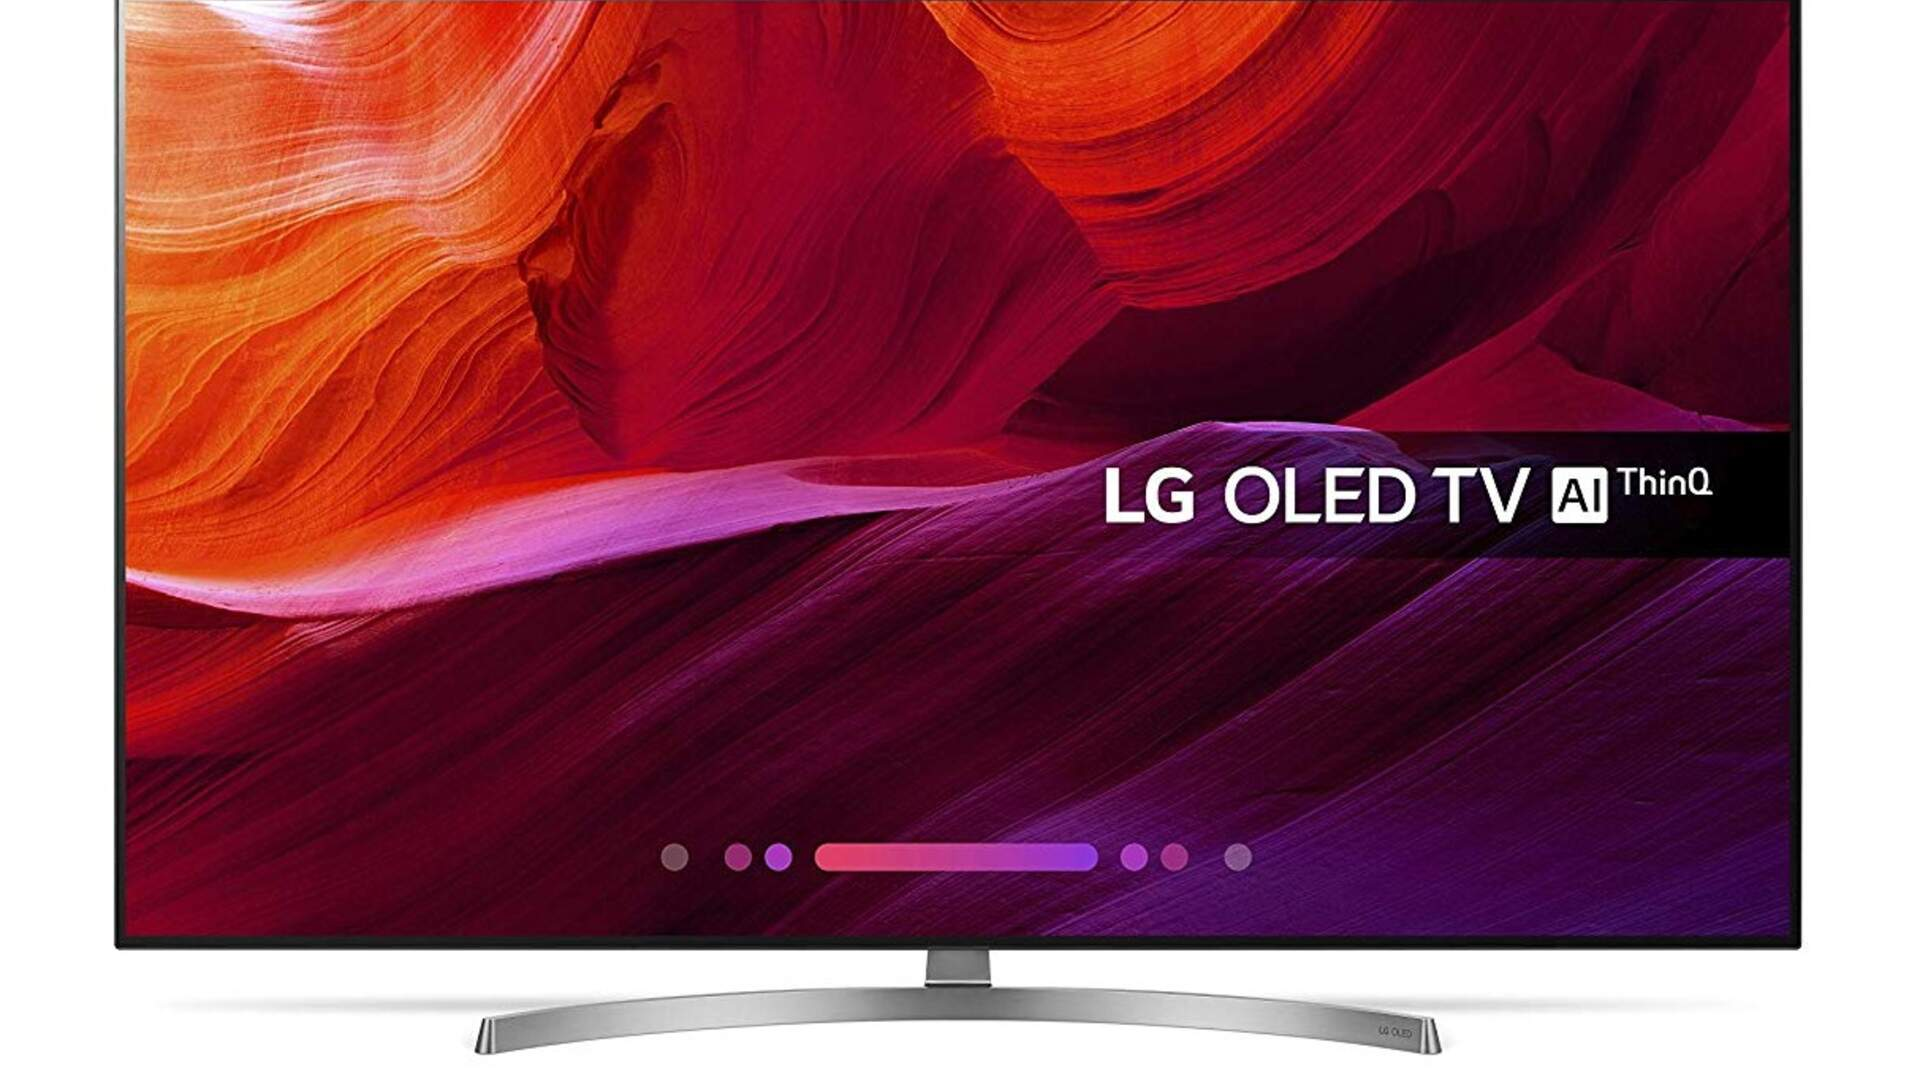 The Best 4K TV Cyber Monday Deals - OLED and LED Offers - LG OLED £1099